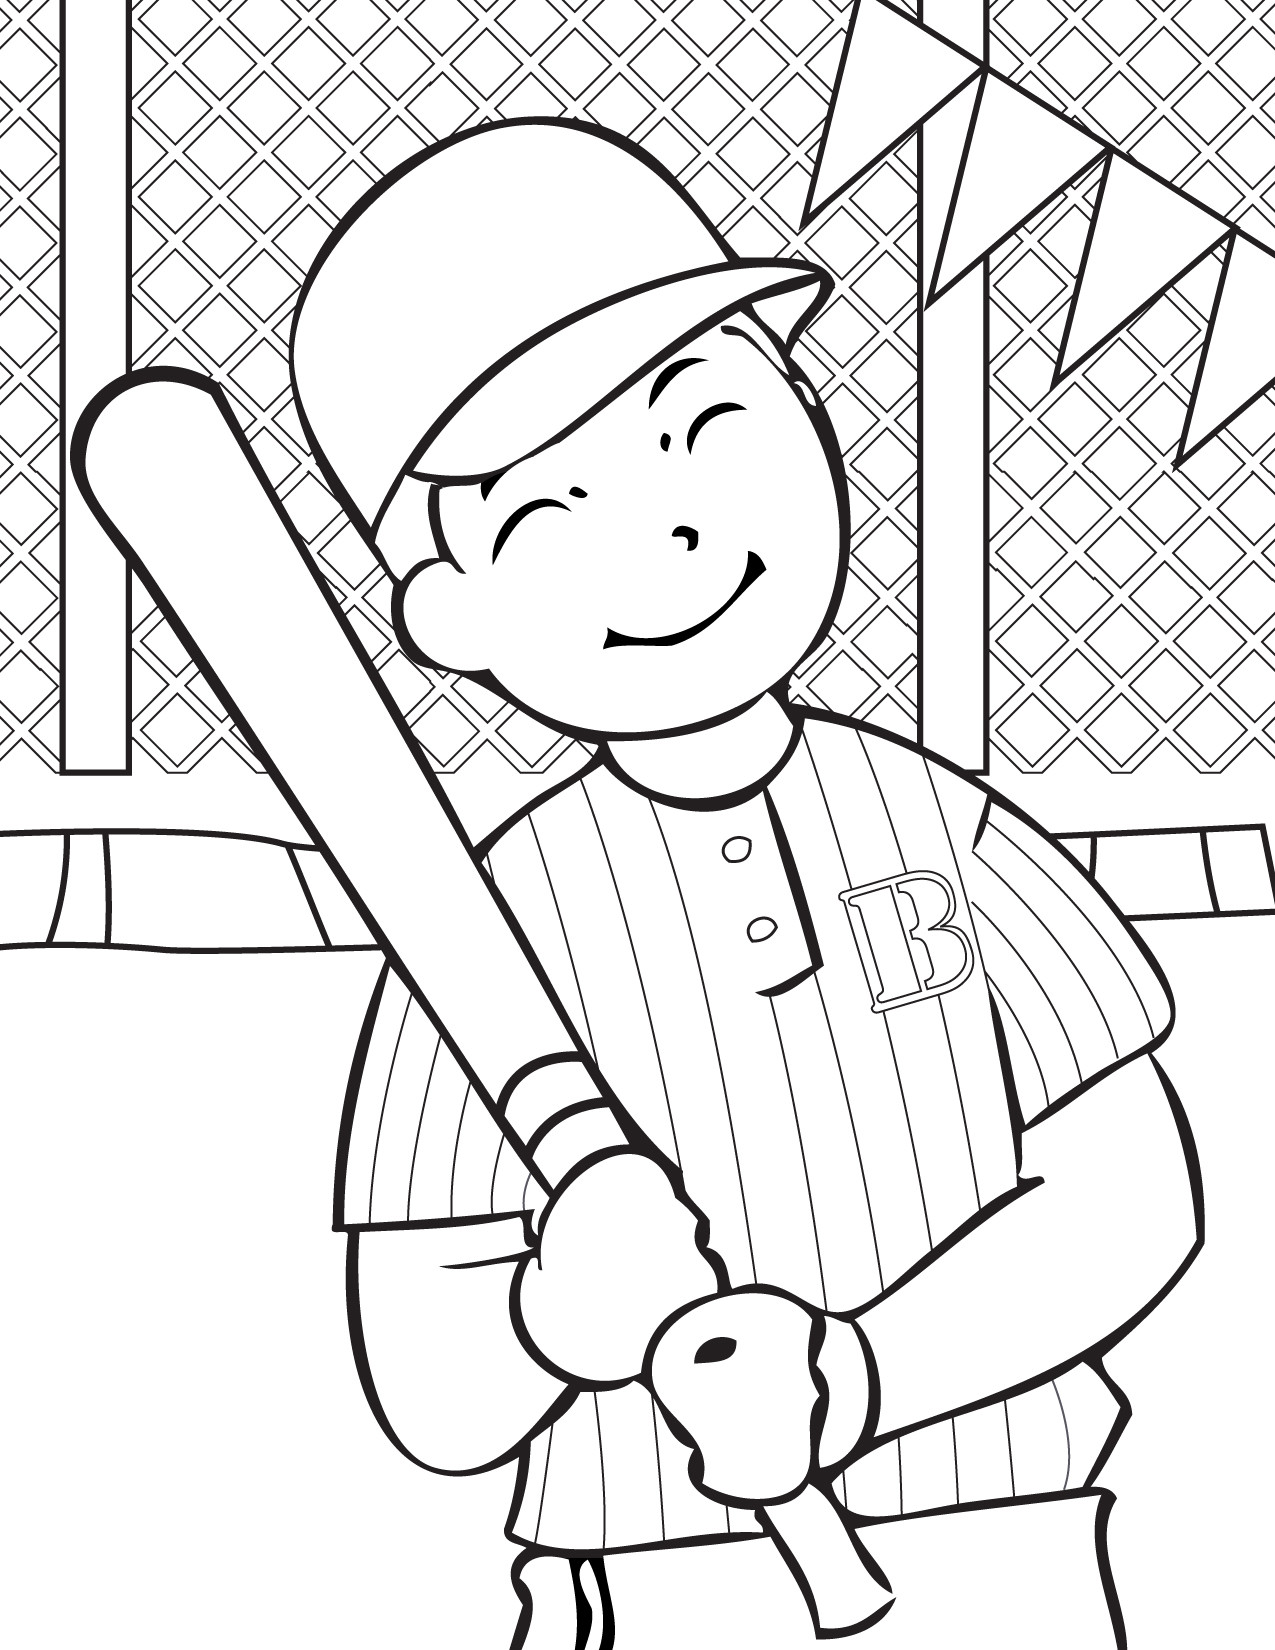 Best ideas about Free Coloring Pages To Print For Kids . Save or Pin Free Printable Baseball Coloring Pages for Kids Best Now.